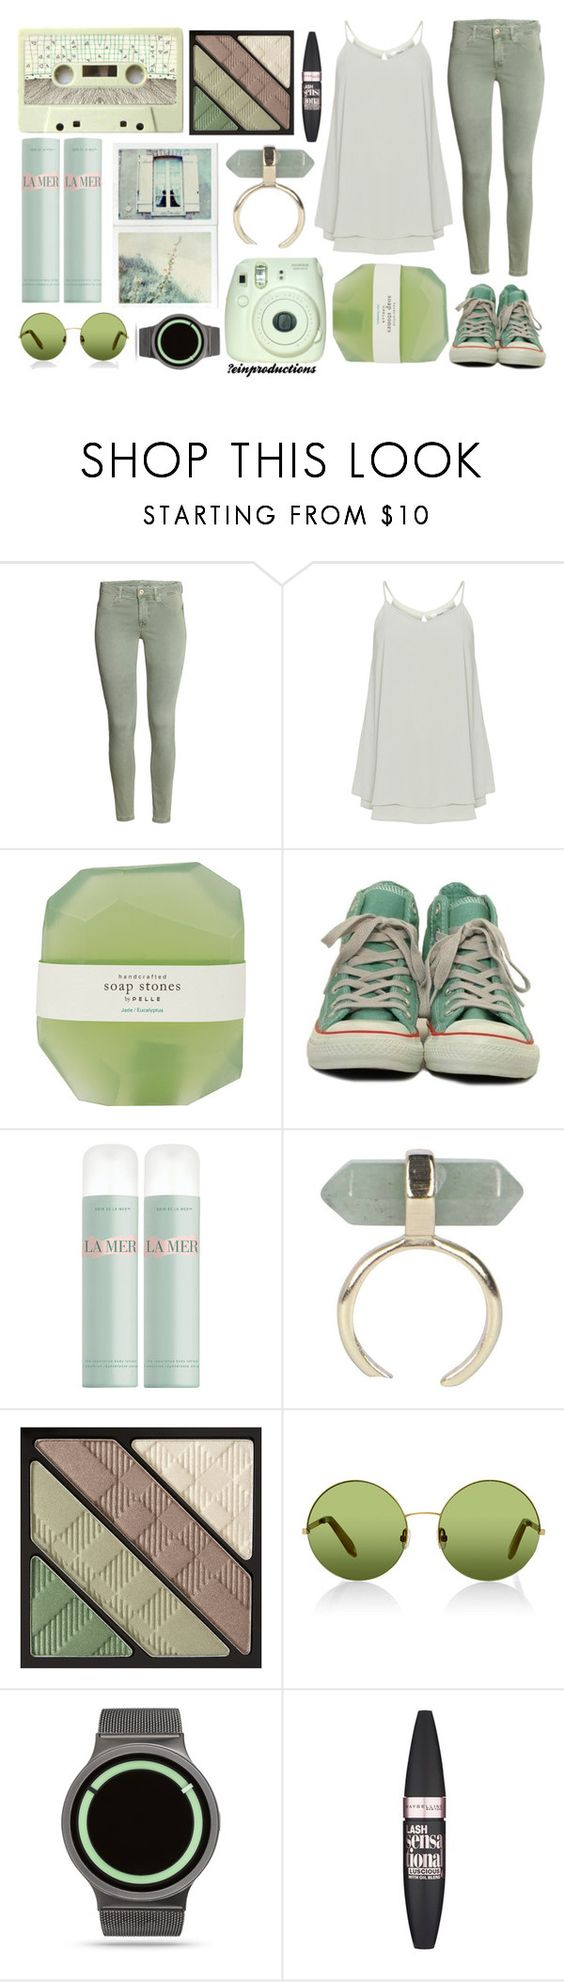 """Hip"" by einproductions on Polyvore featuring Zizzi, Pelle, Converse, La Mer, Boohoo, Burberry, Victoria, Victoria Beckham, ZIIIRO and Maybelline"